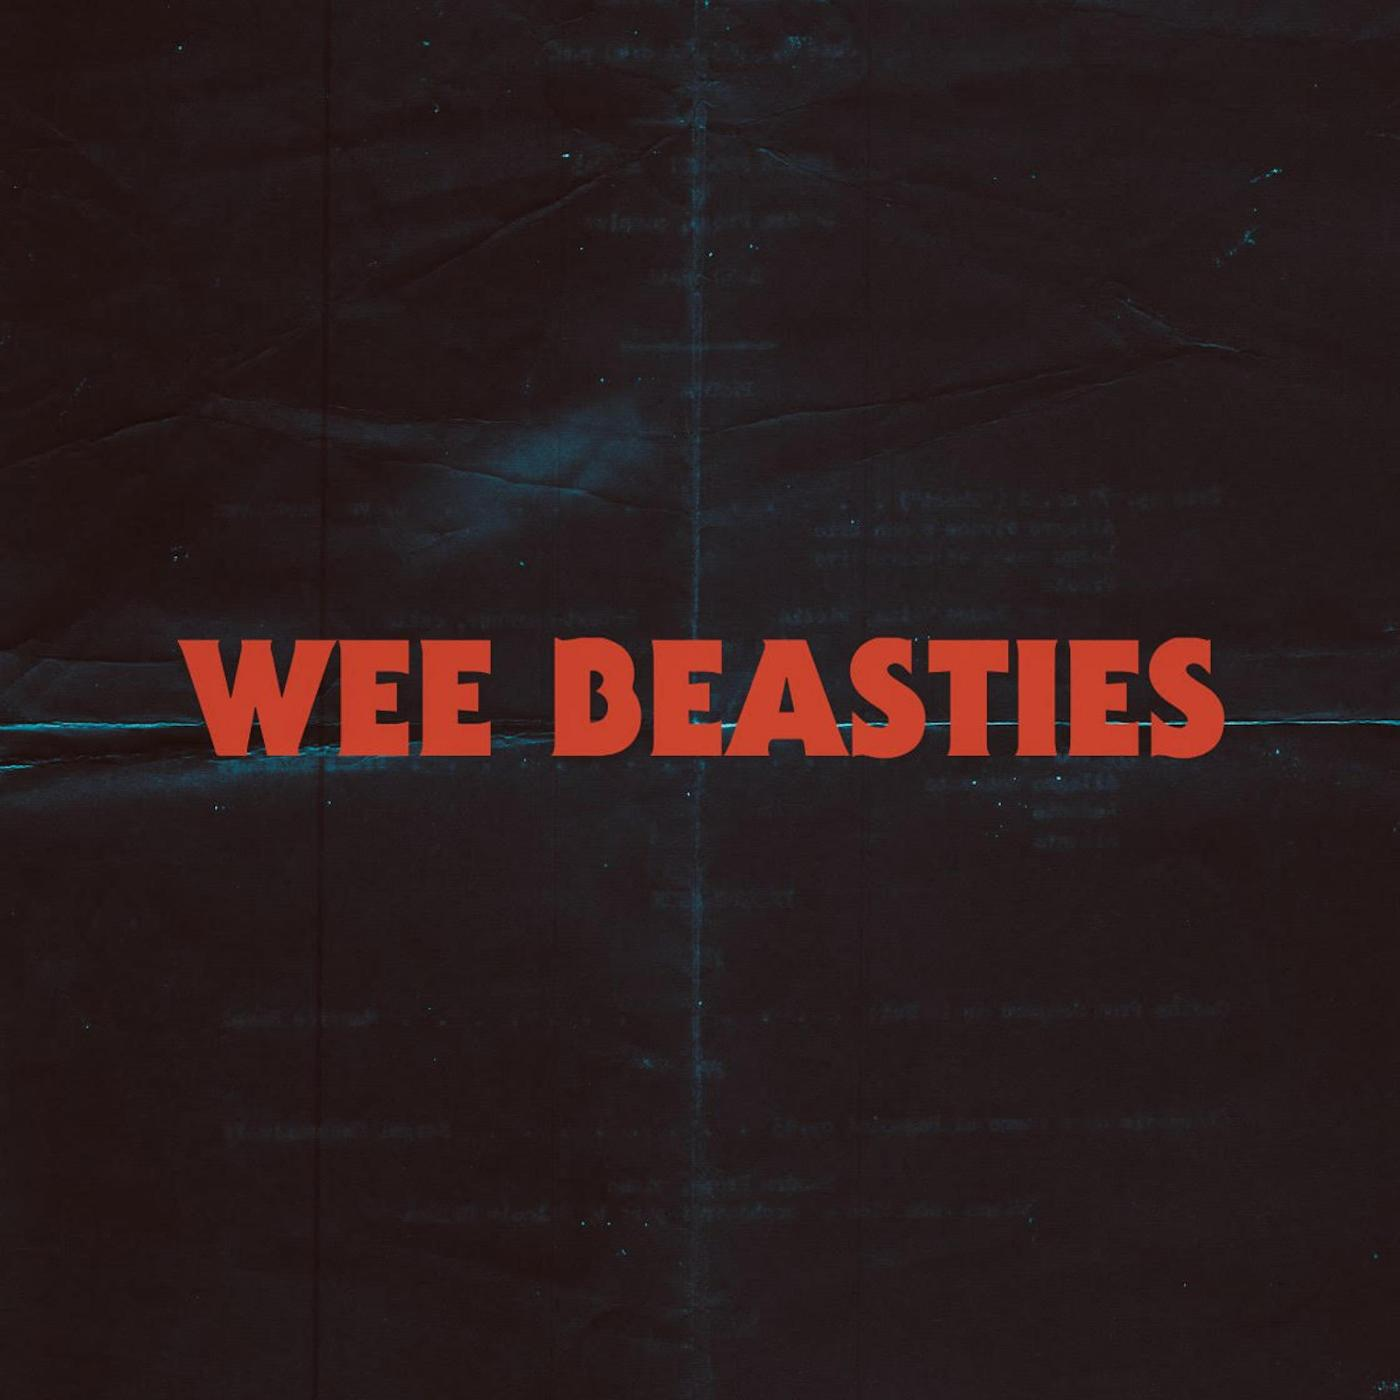 Stream Free Music from Albums by Wee Beasties | iHeartRadio